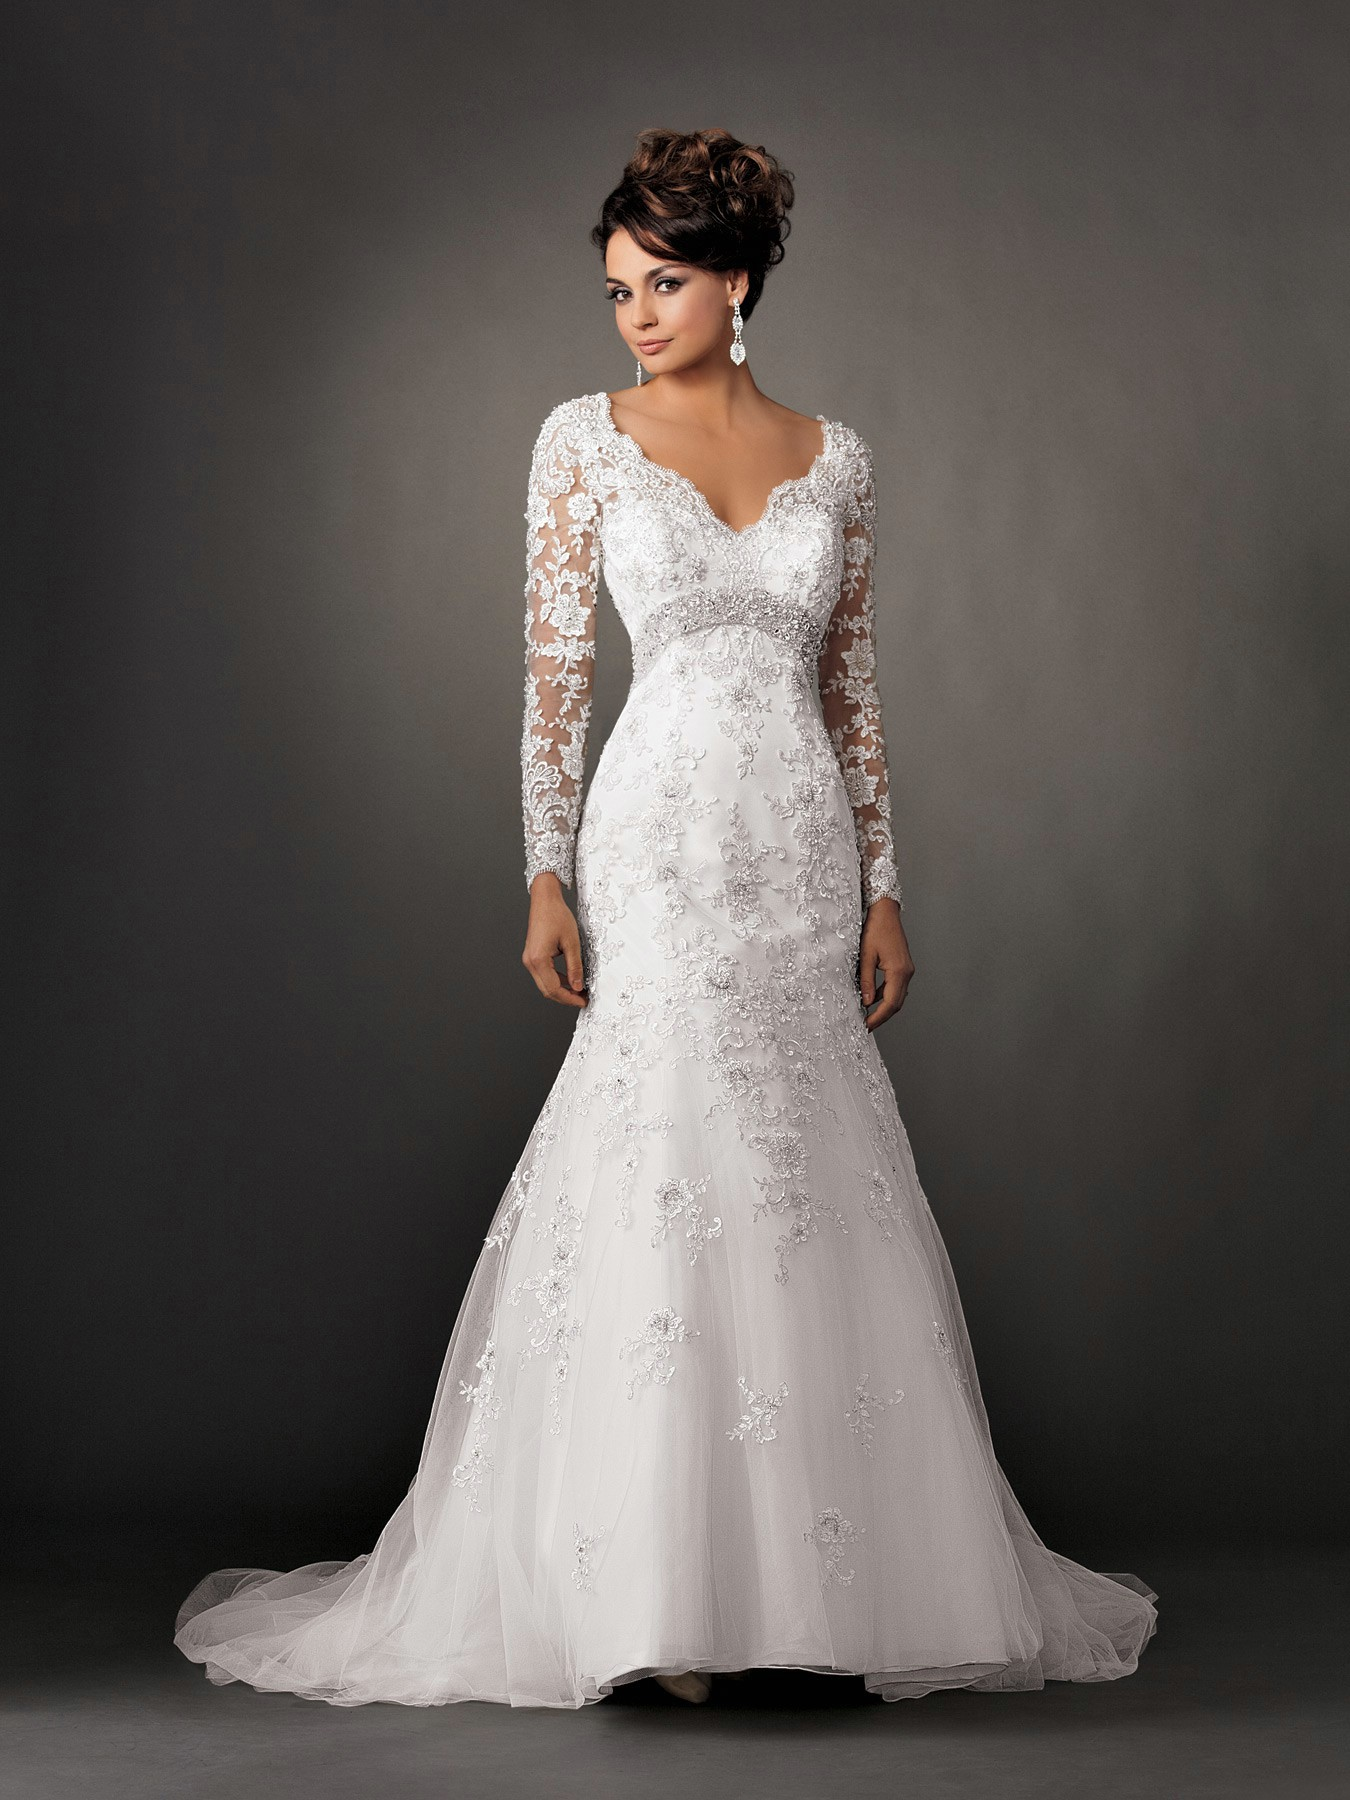 Modest Collection Of Mermaid Wedding Dresses With Long Sleeves Cherry Marry